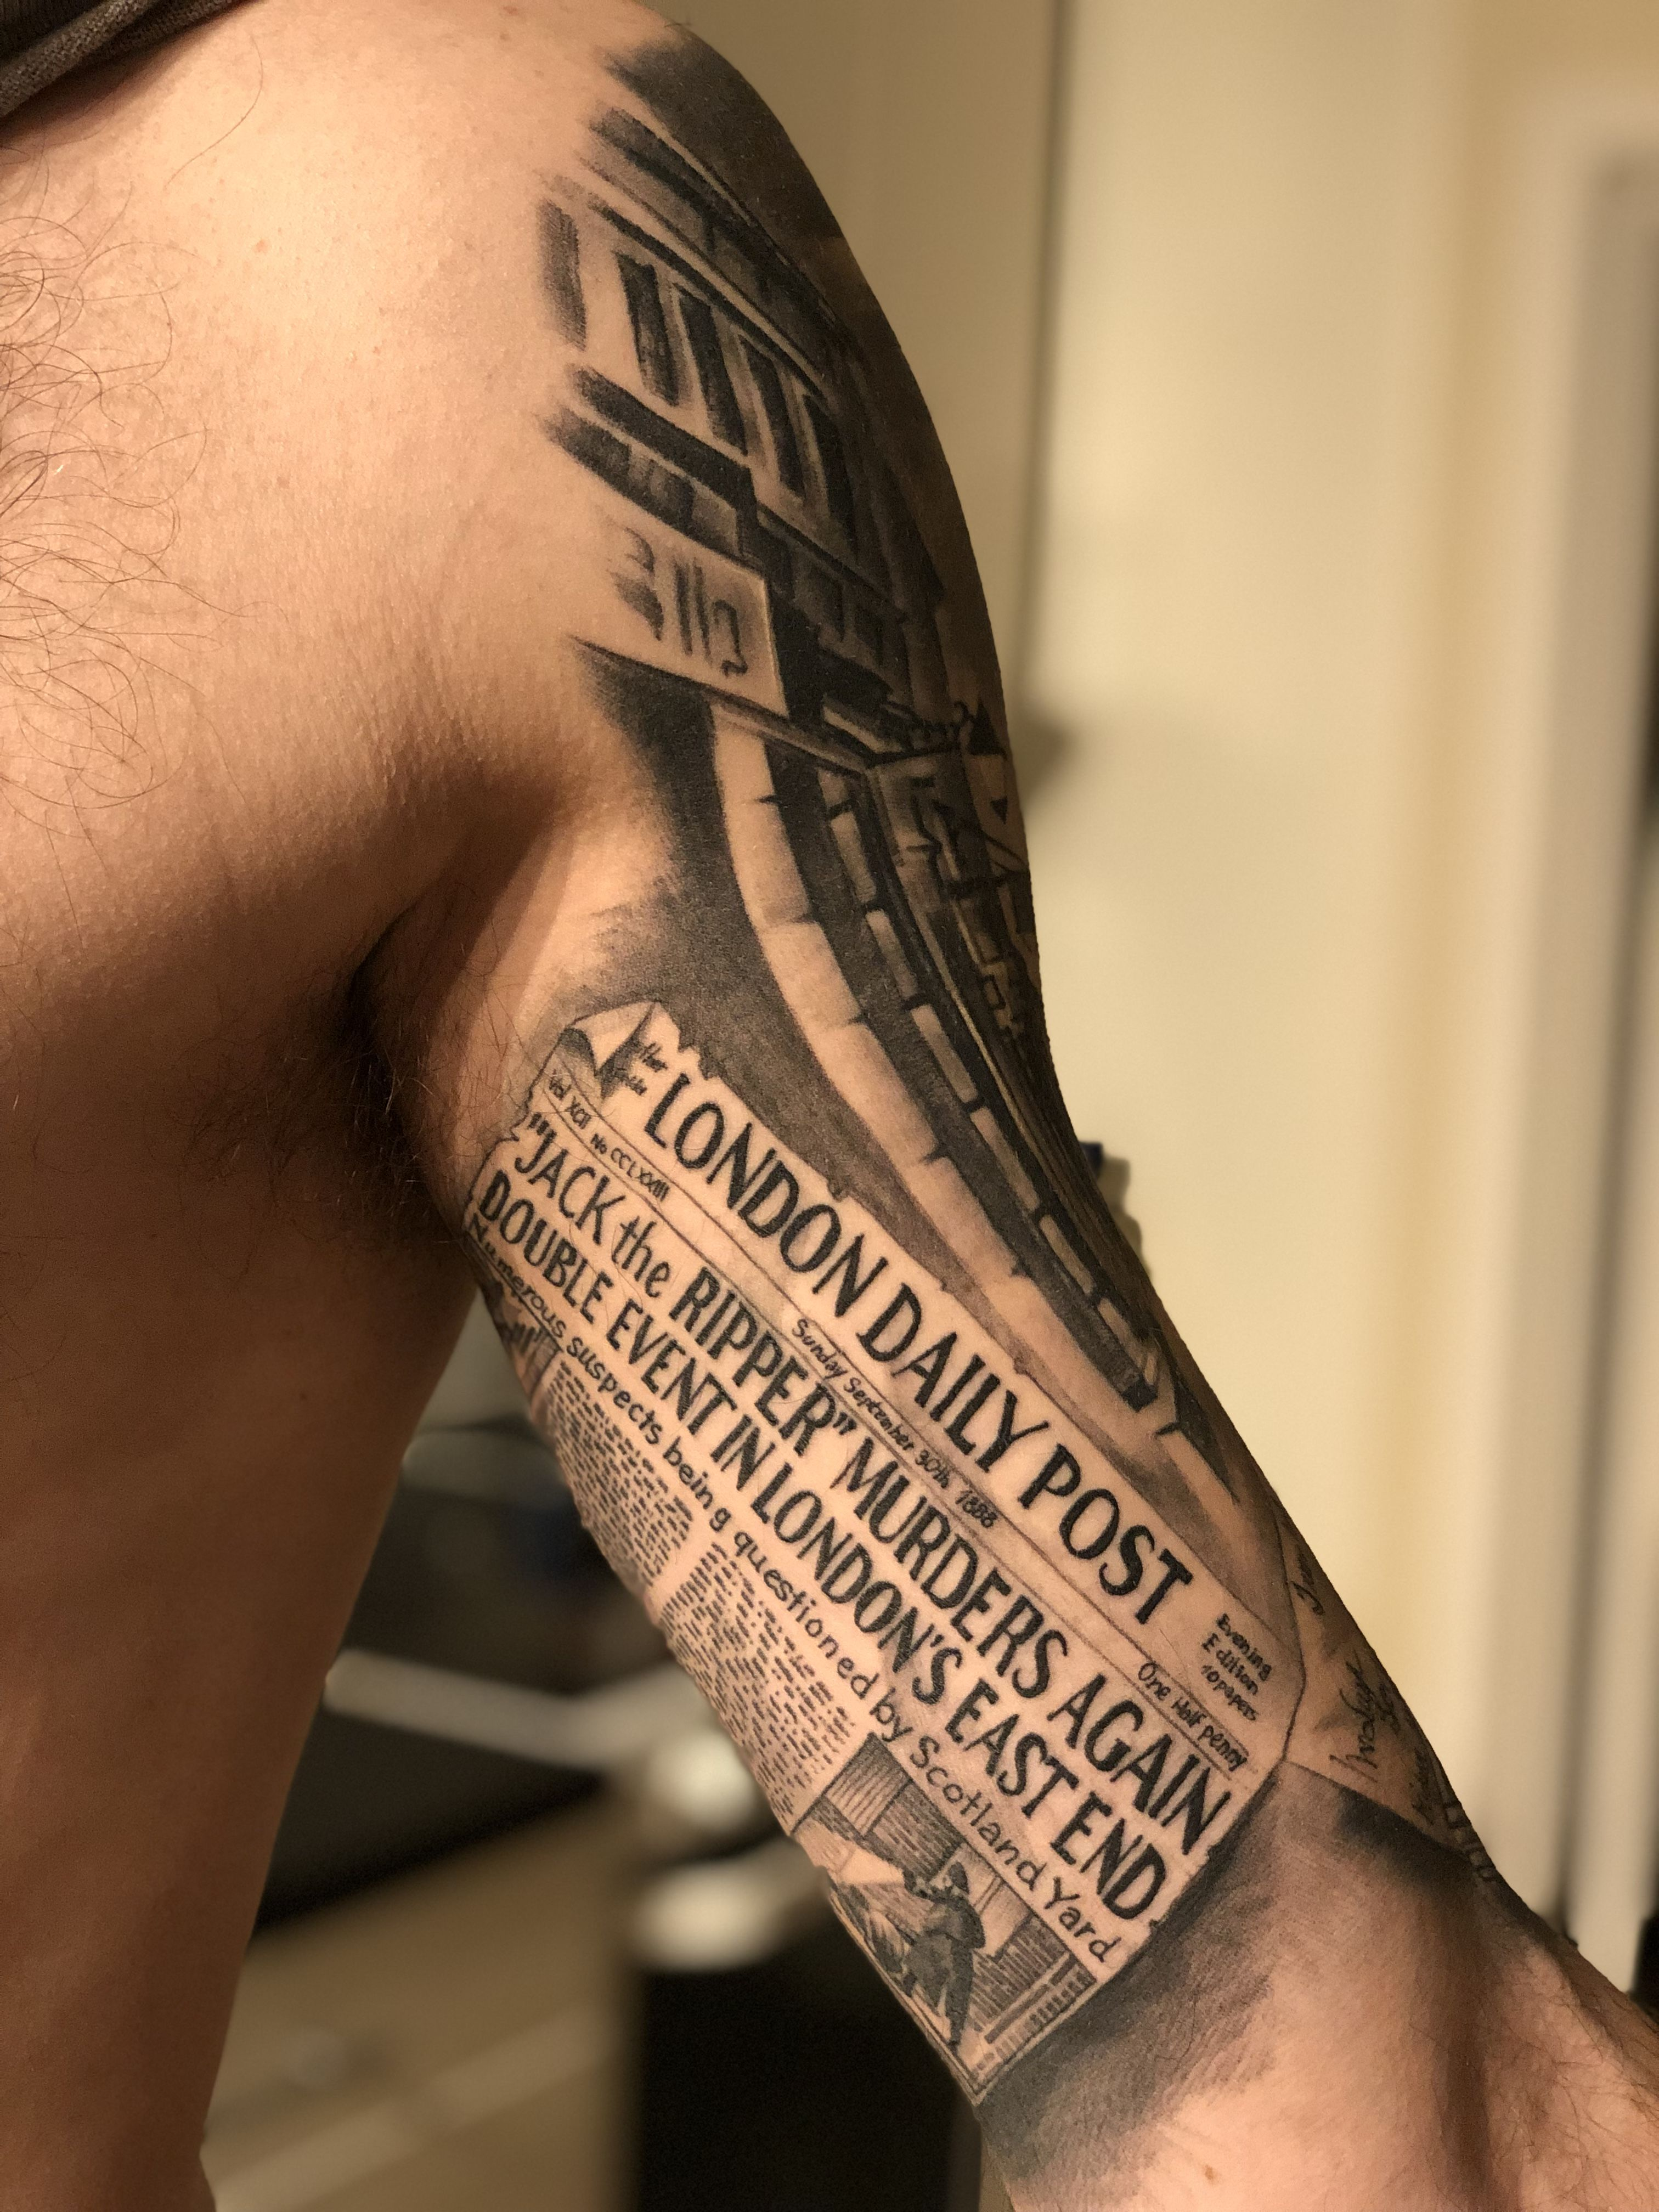 Jack O Connell Tattoos : connell, tattoos, Barkan, Victorian, London,, Harry, Tattoos,, O'connell